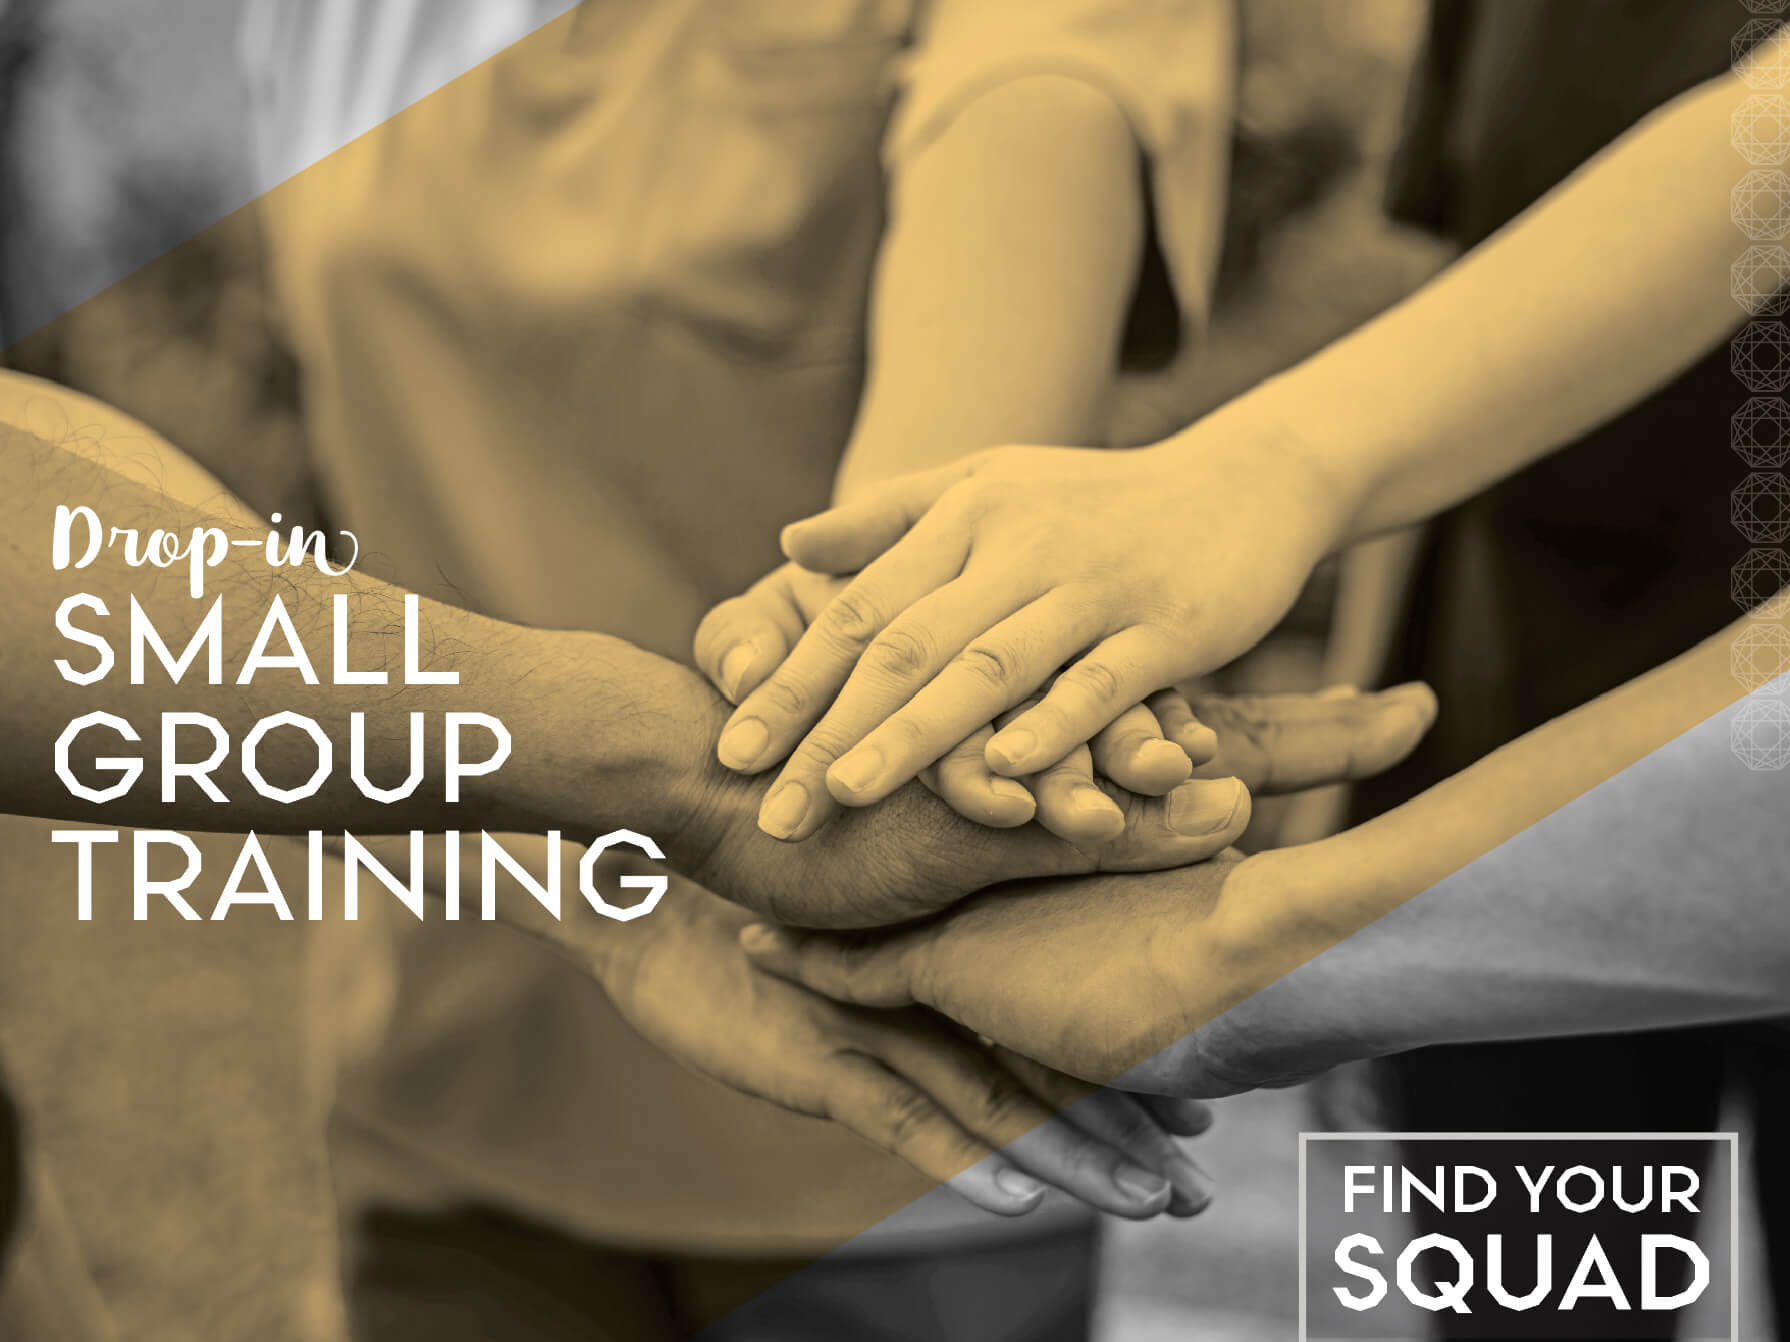 Drop-In Small Group Training at Downtown